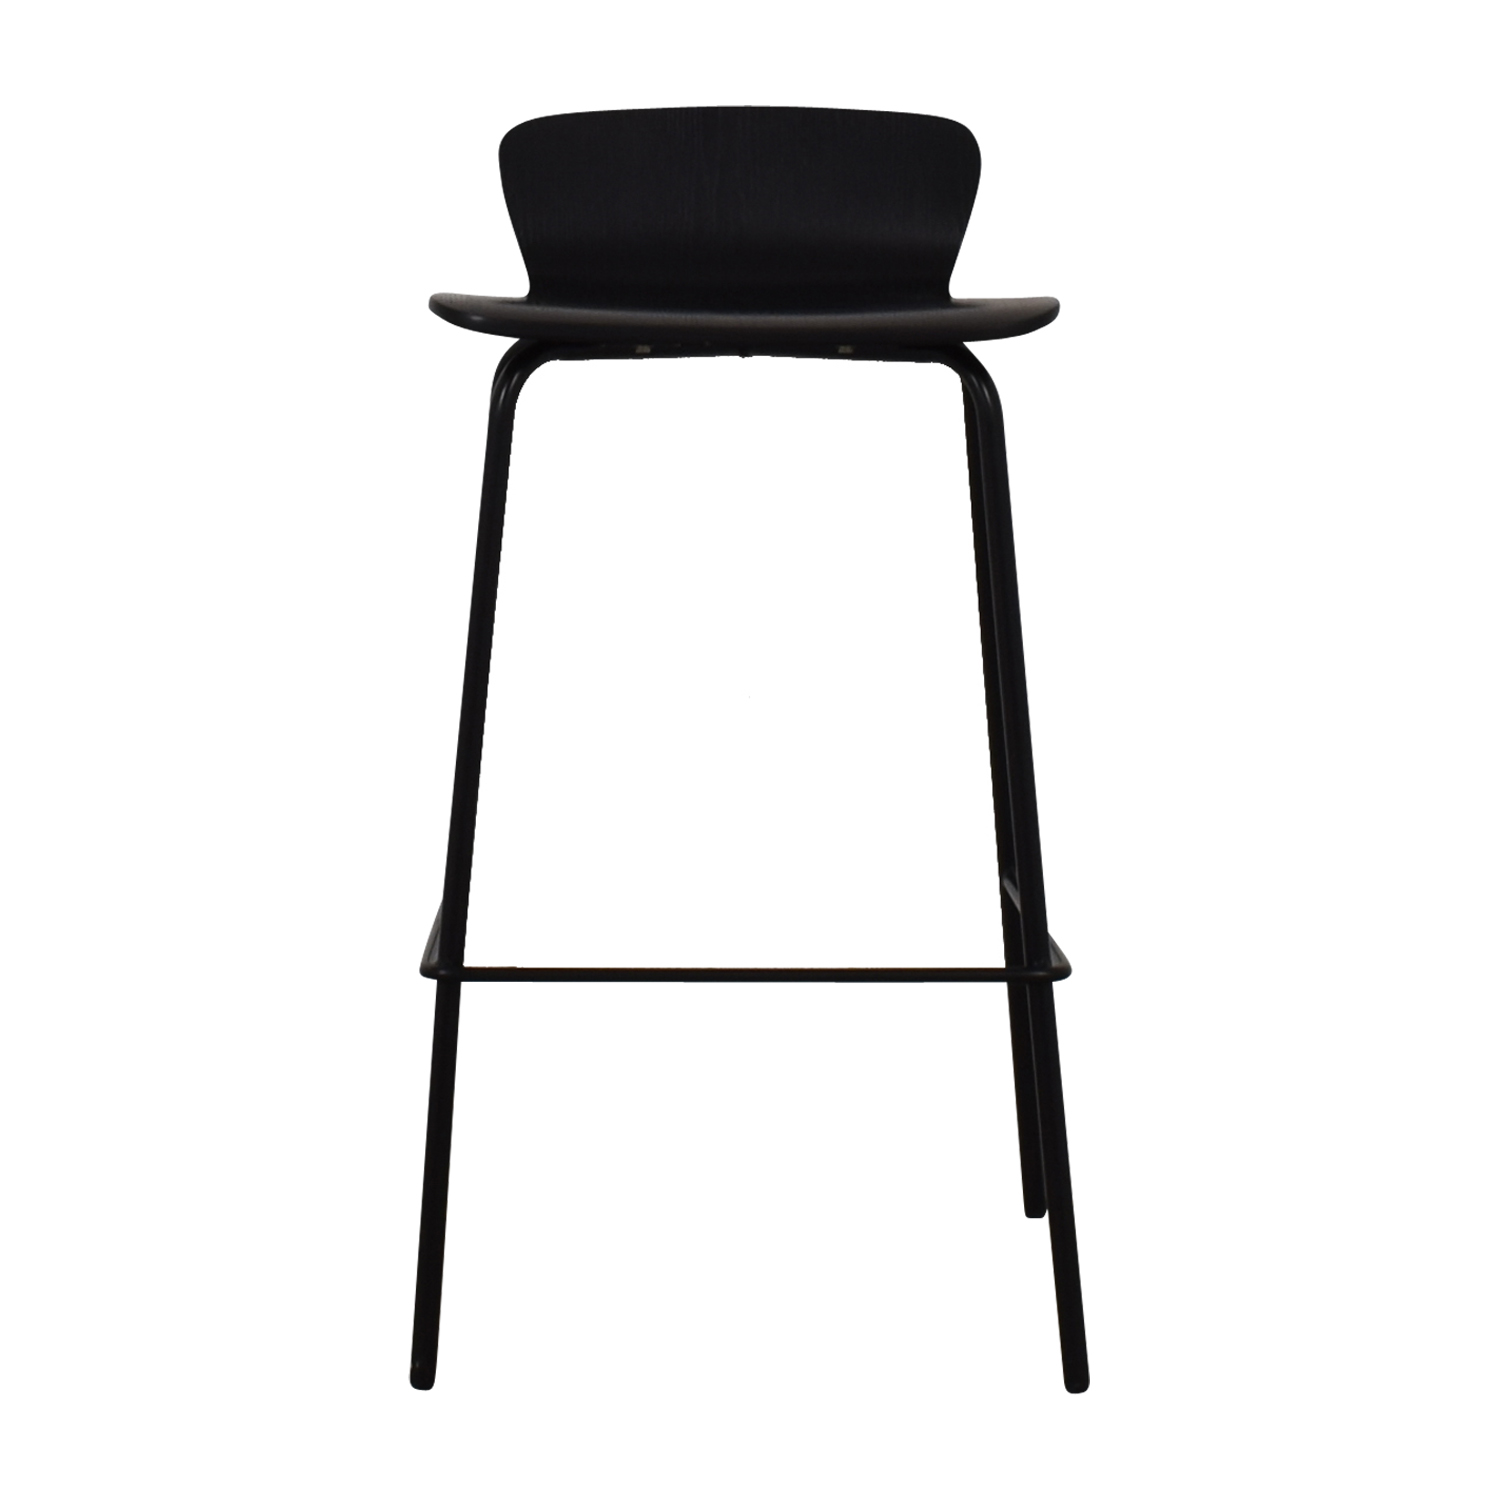 Crate & Barrel Crate & Barrel Felix Black Counter Bar Stool used